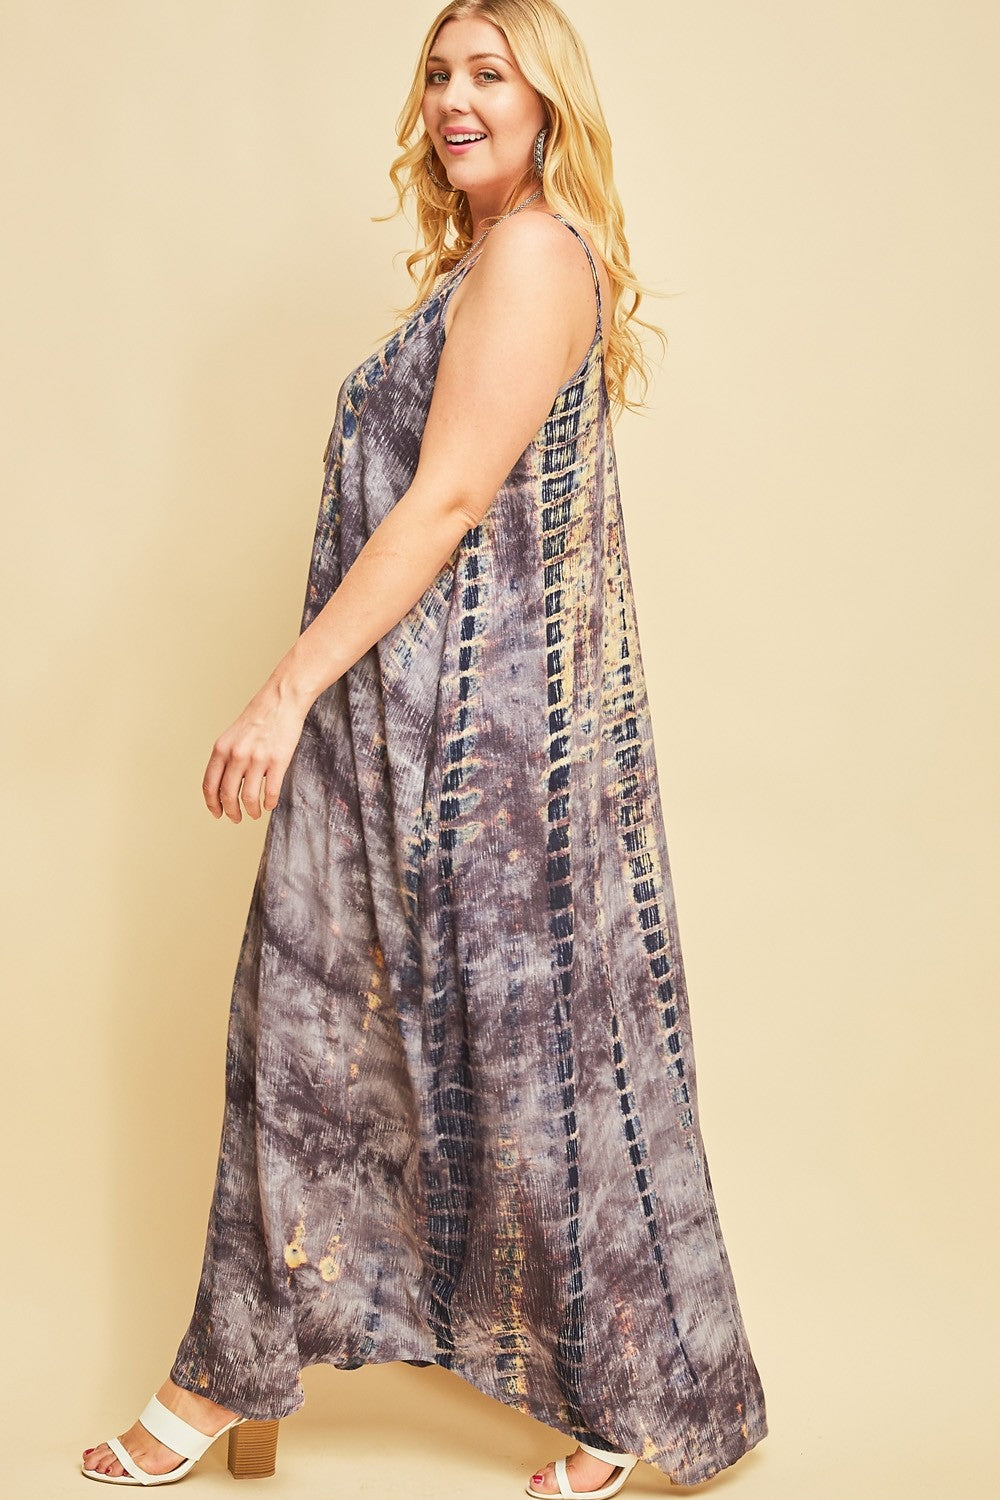 Side view plus size woman wearing sleeveless slate blue multi maxi dress with side pockets